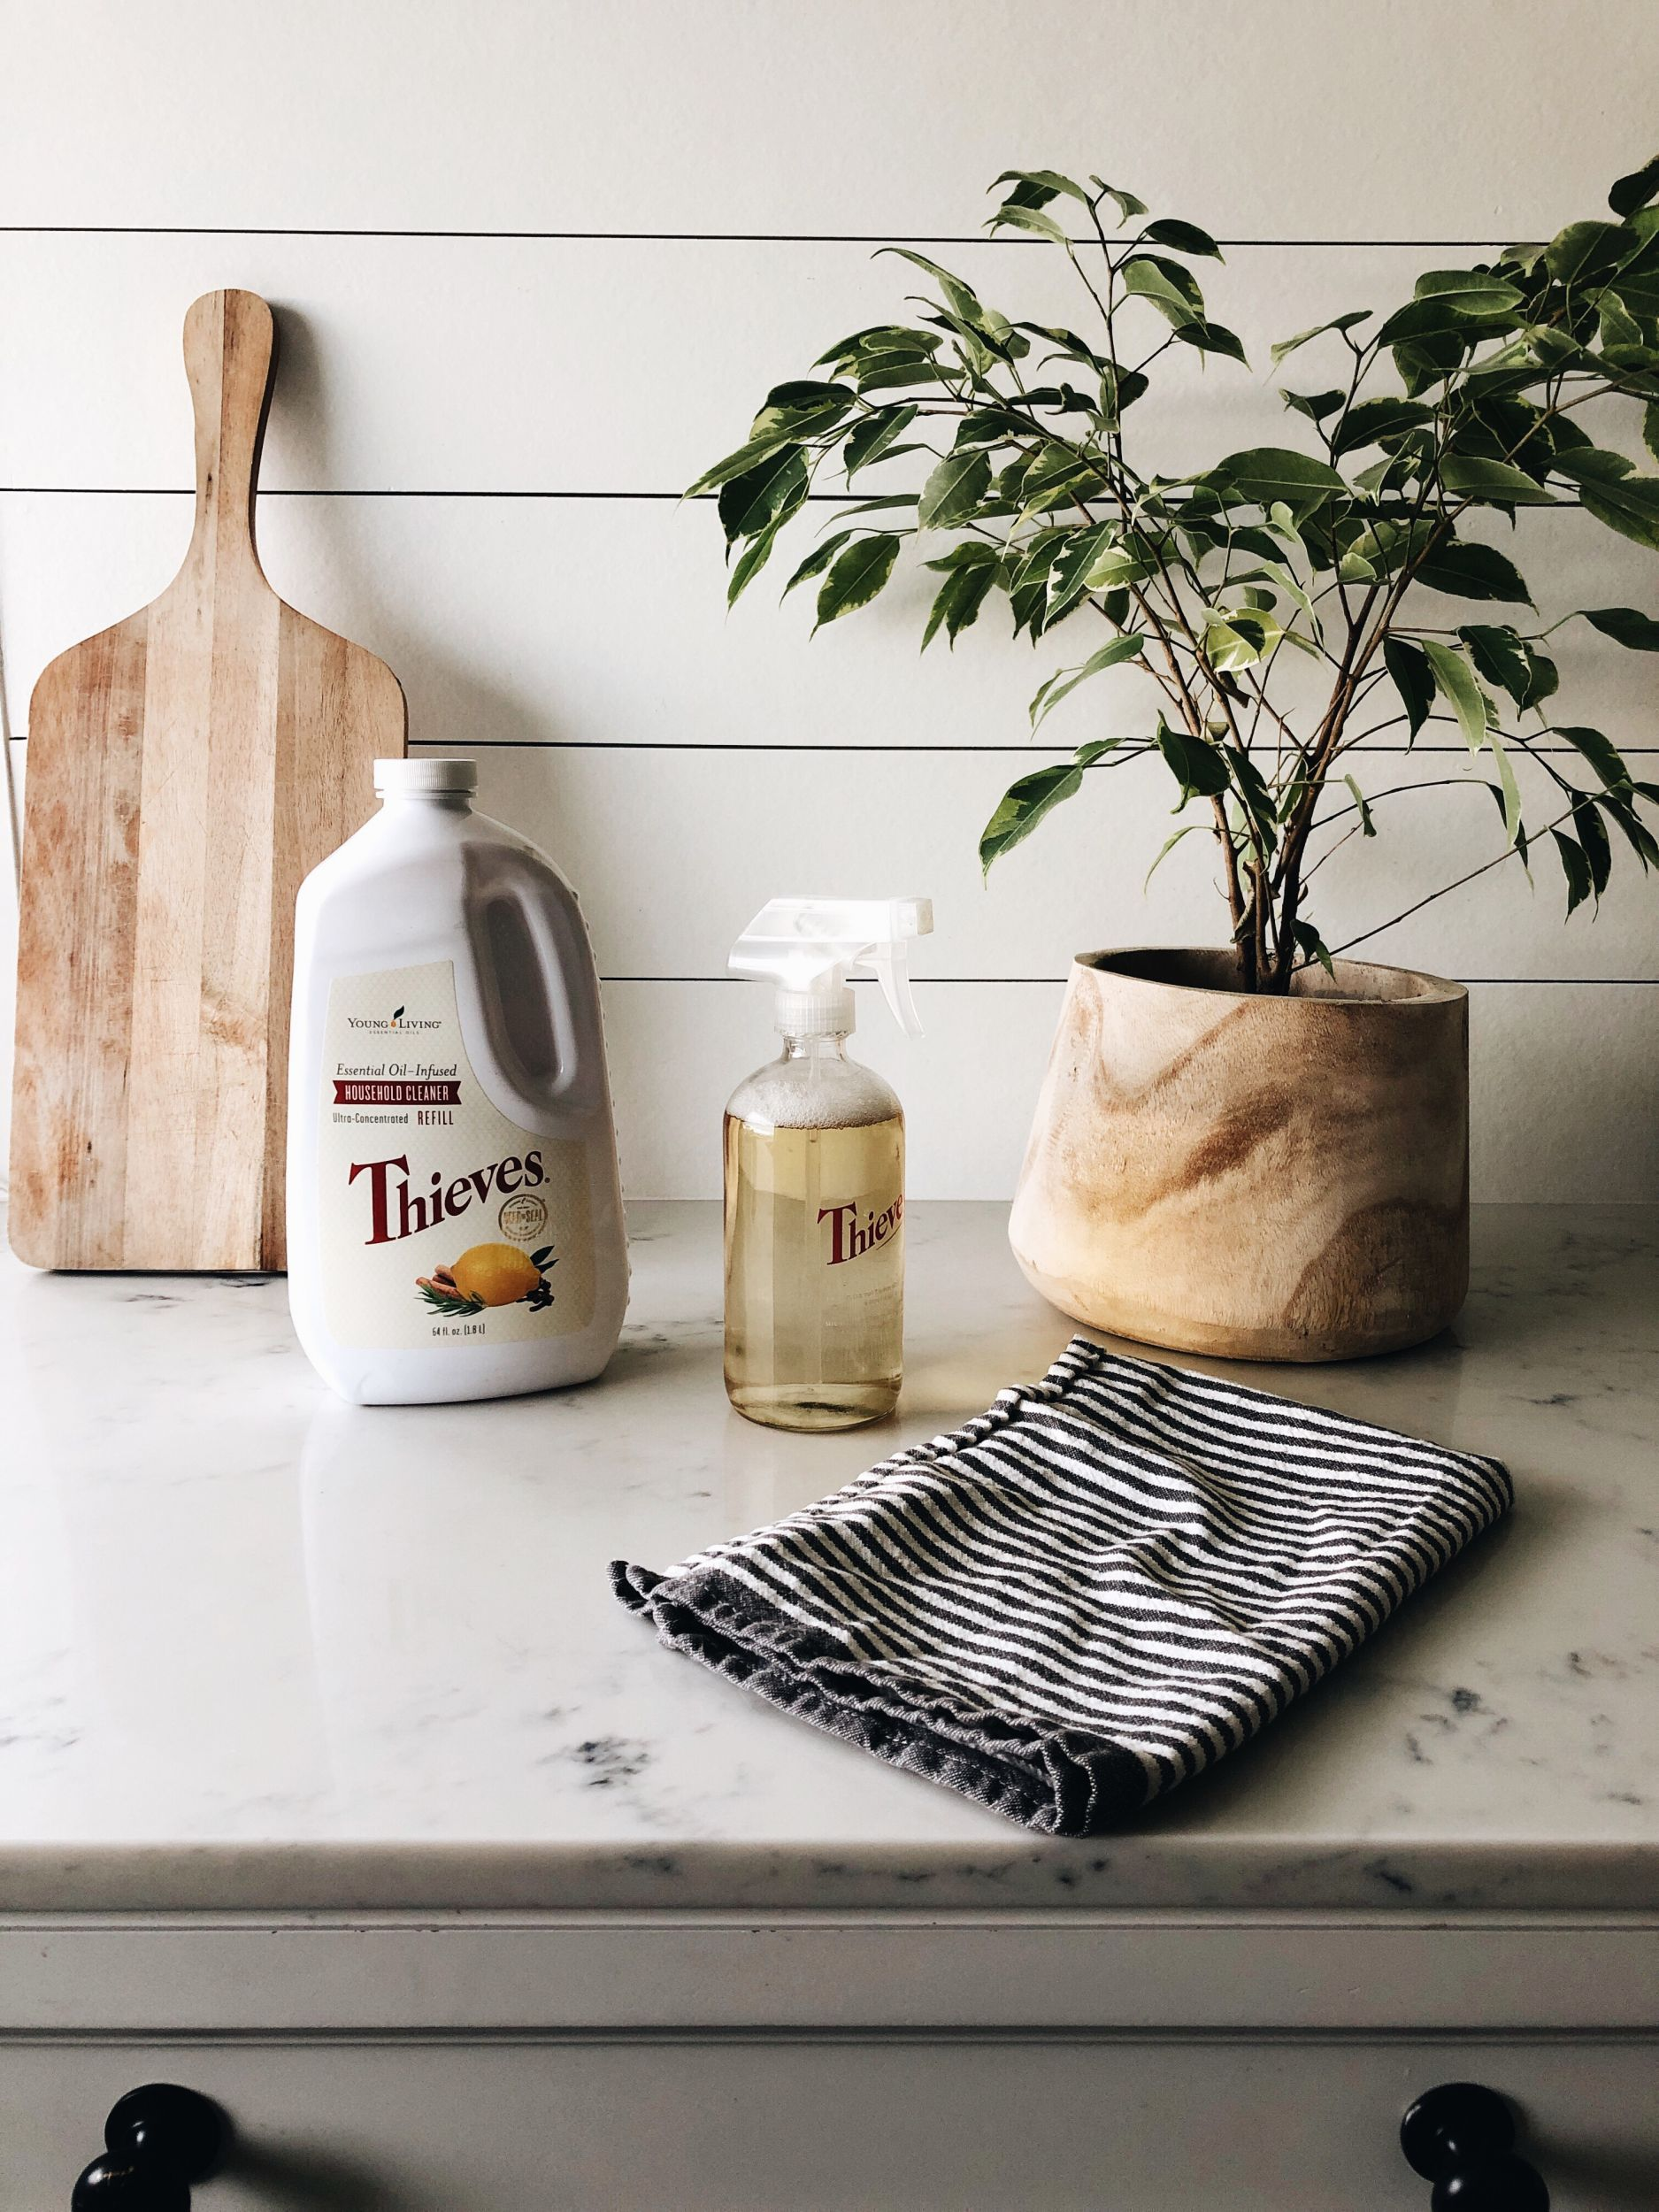 Favorite Plant-Based Products for Cleaning and Wellness